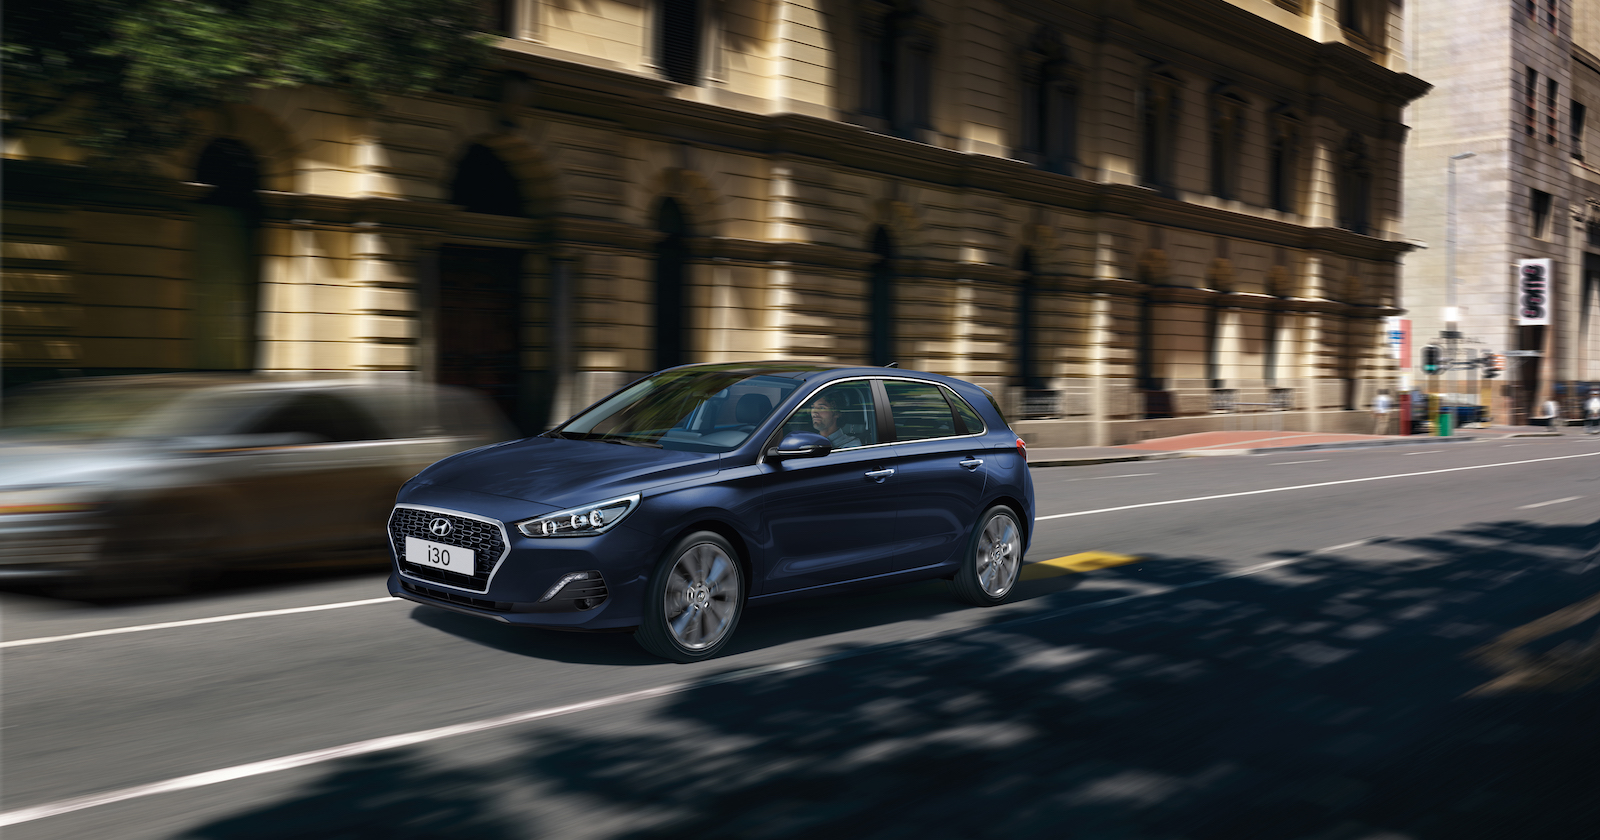 The Hyundai i30